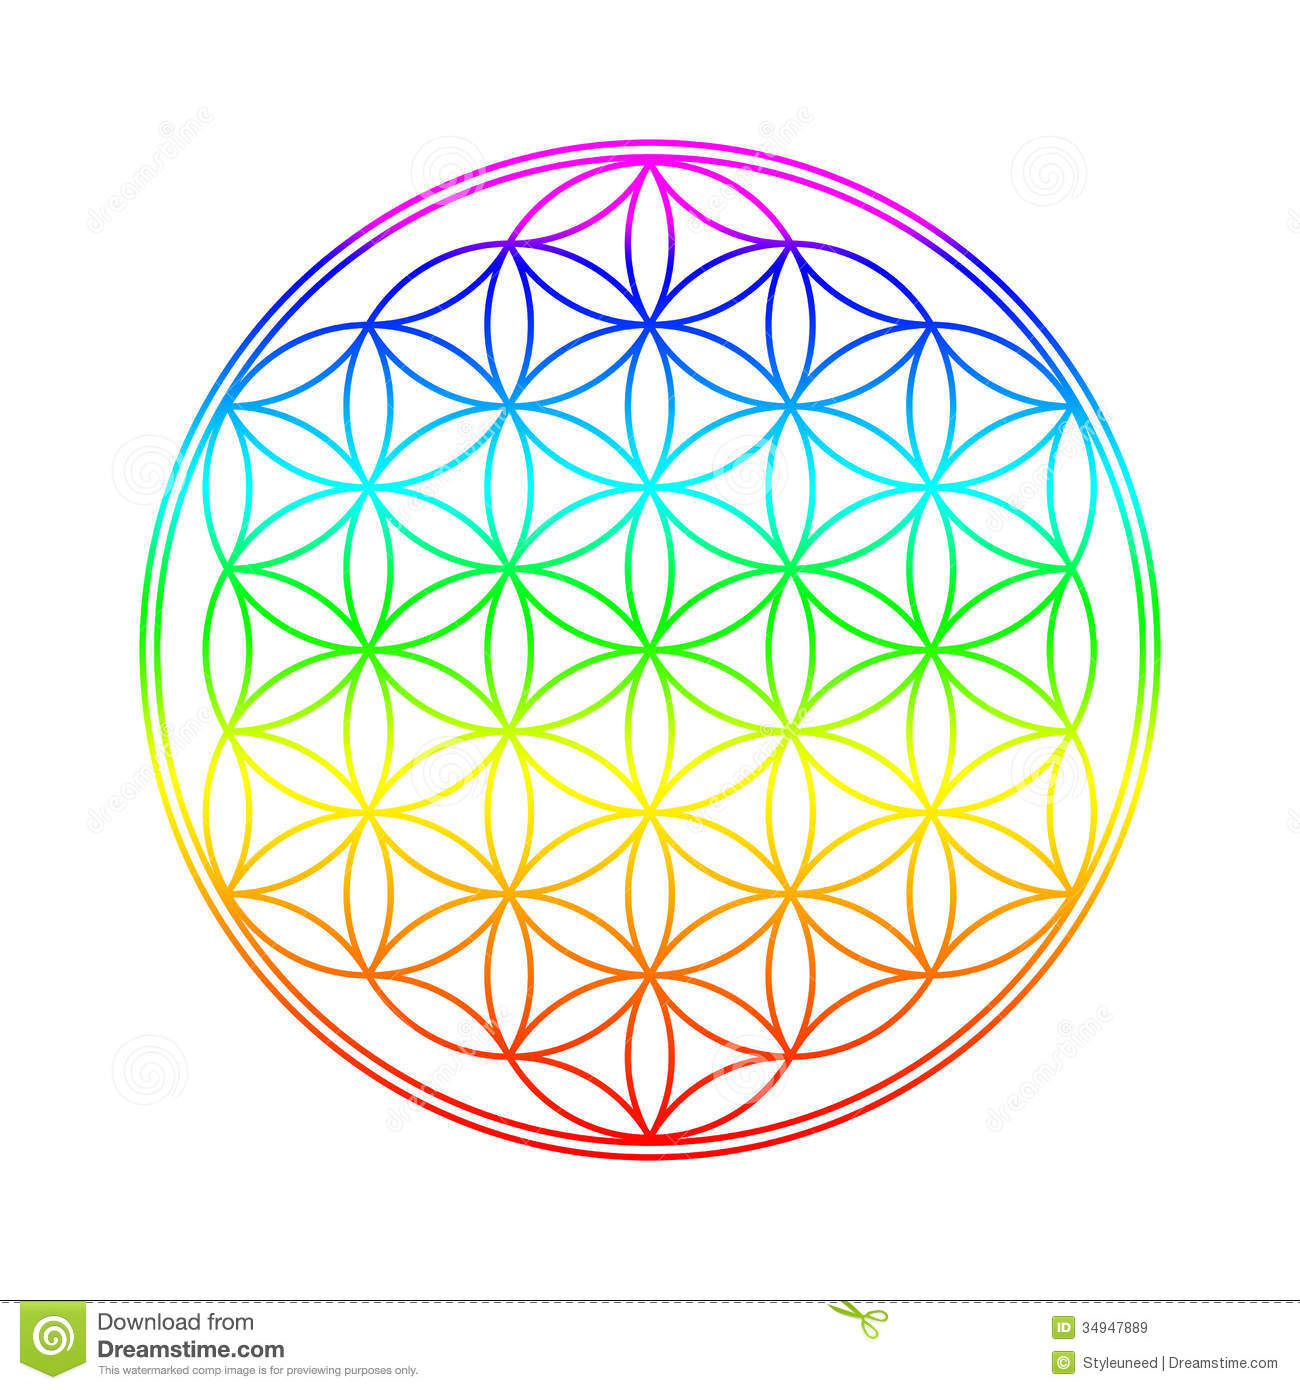 15 Flower Of Life Image Free Top Collection Of Different Types